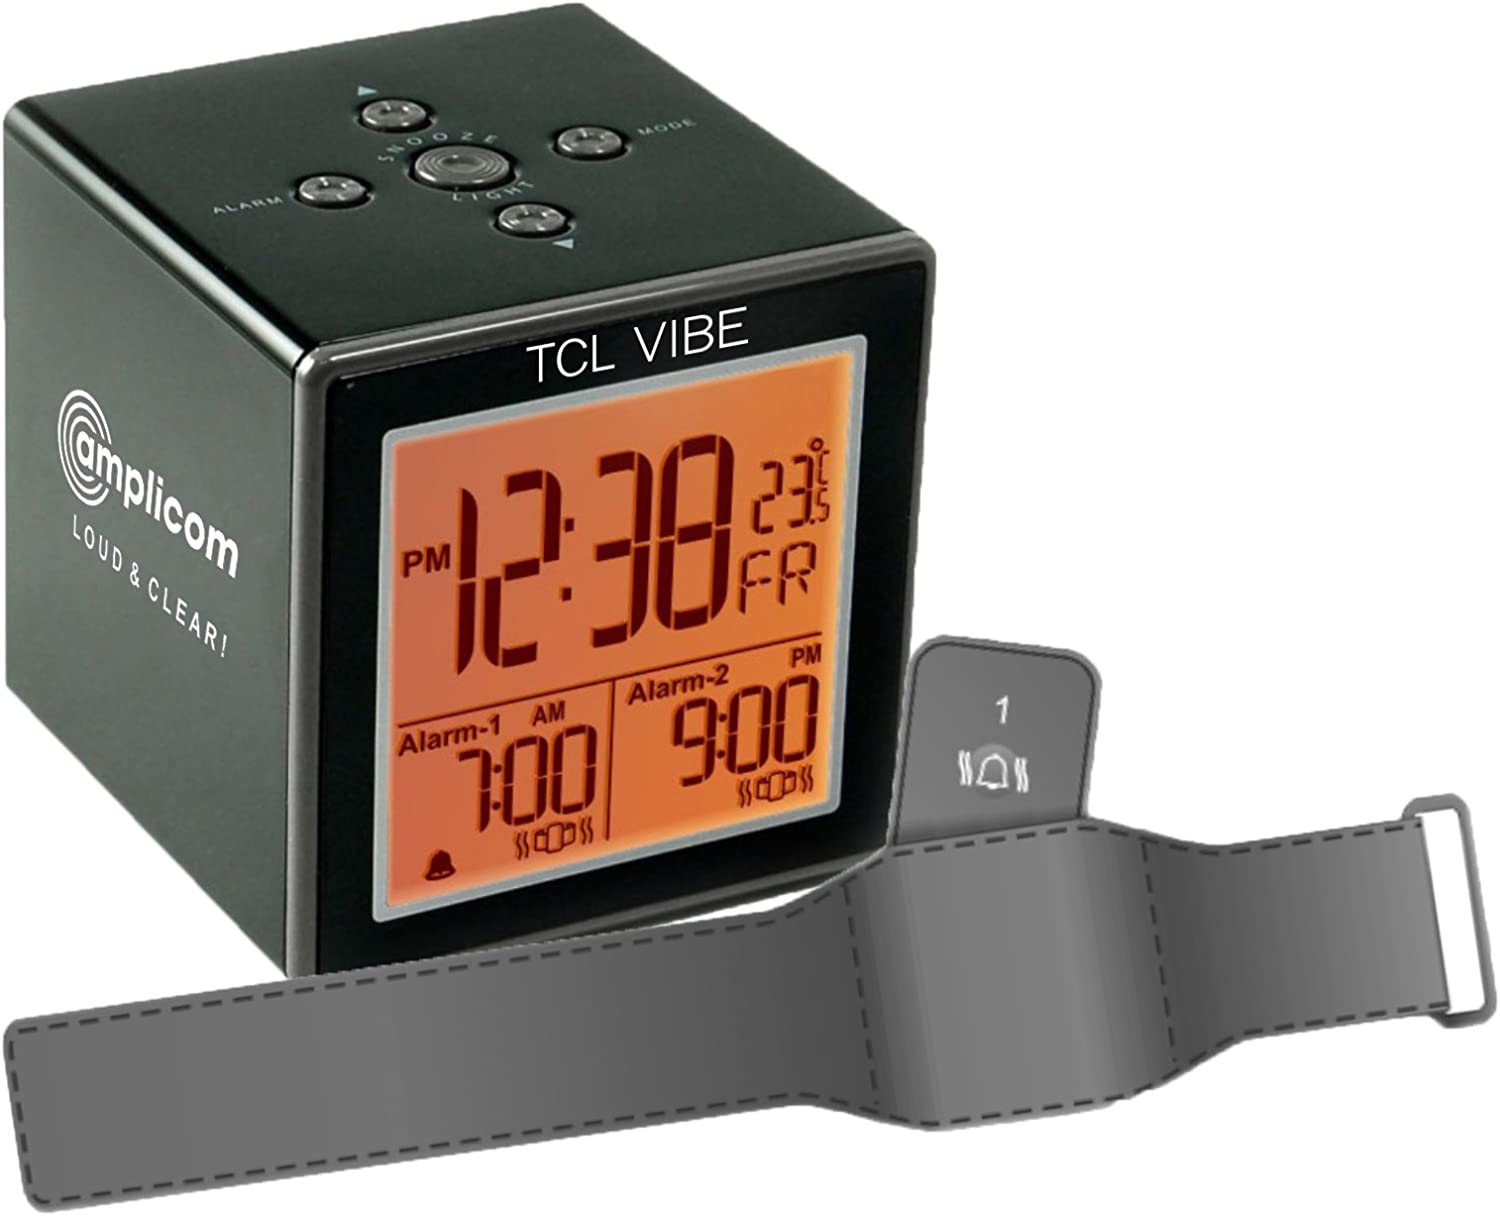 Amazon.com: Amplicom TCL Vibe Alarm Clock, Small, Black - 95866 ...